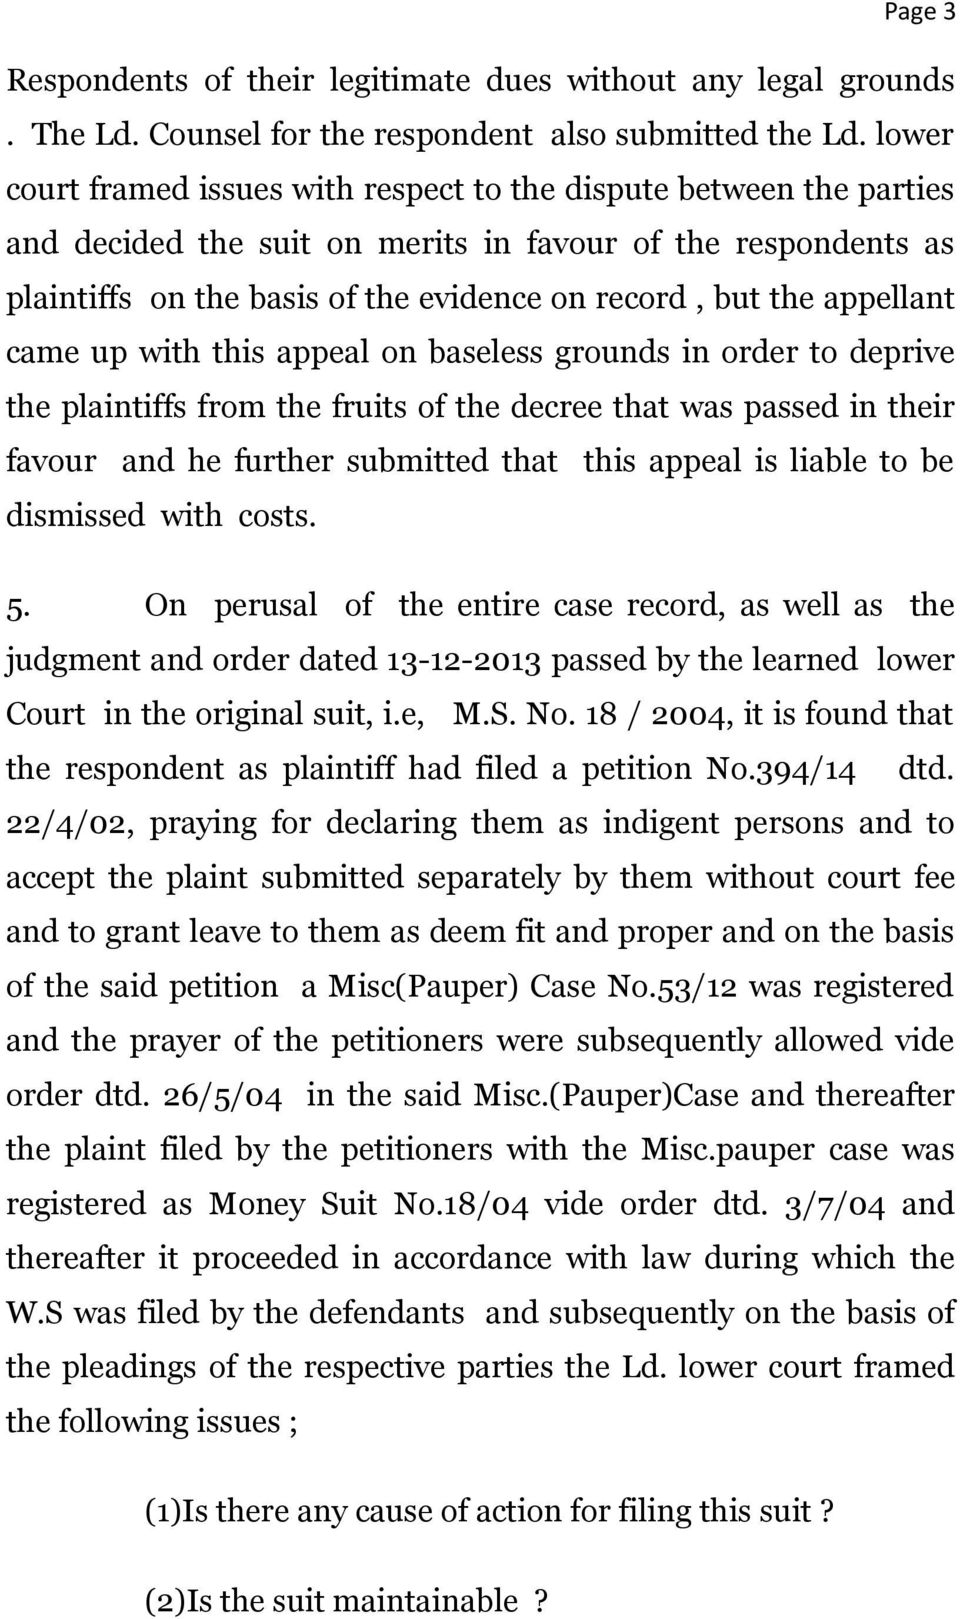 appellant came up with this appeal on baseless grounds in order to deprive the plaintiffs from the fruits of the decree that was passed in their favour and he further submitted that this appeal is